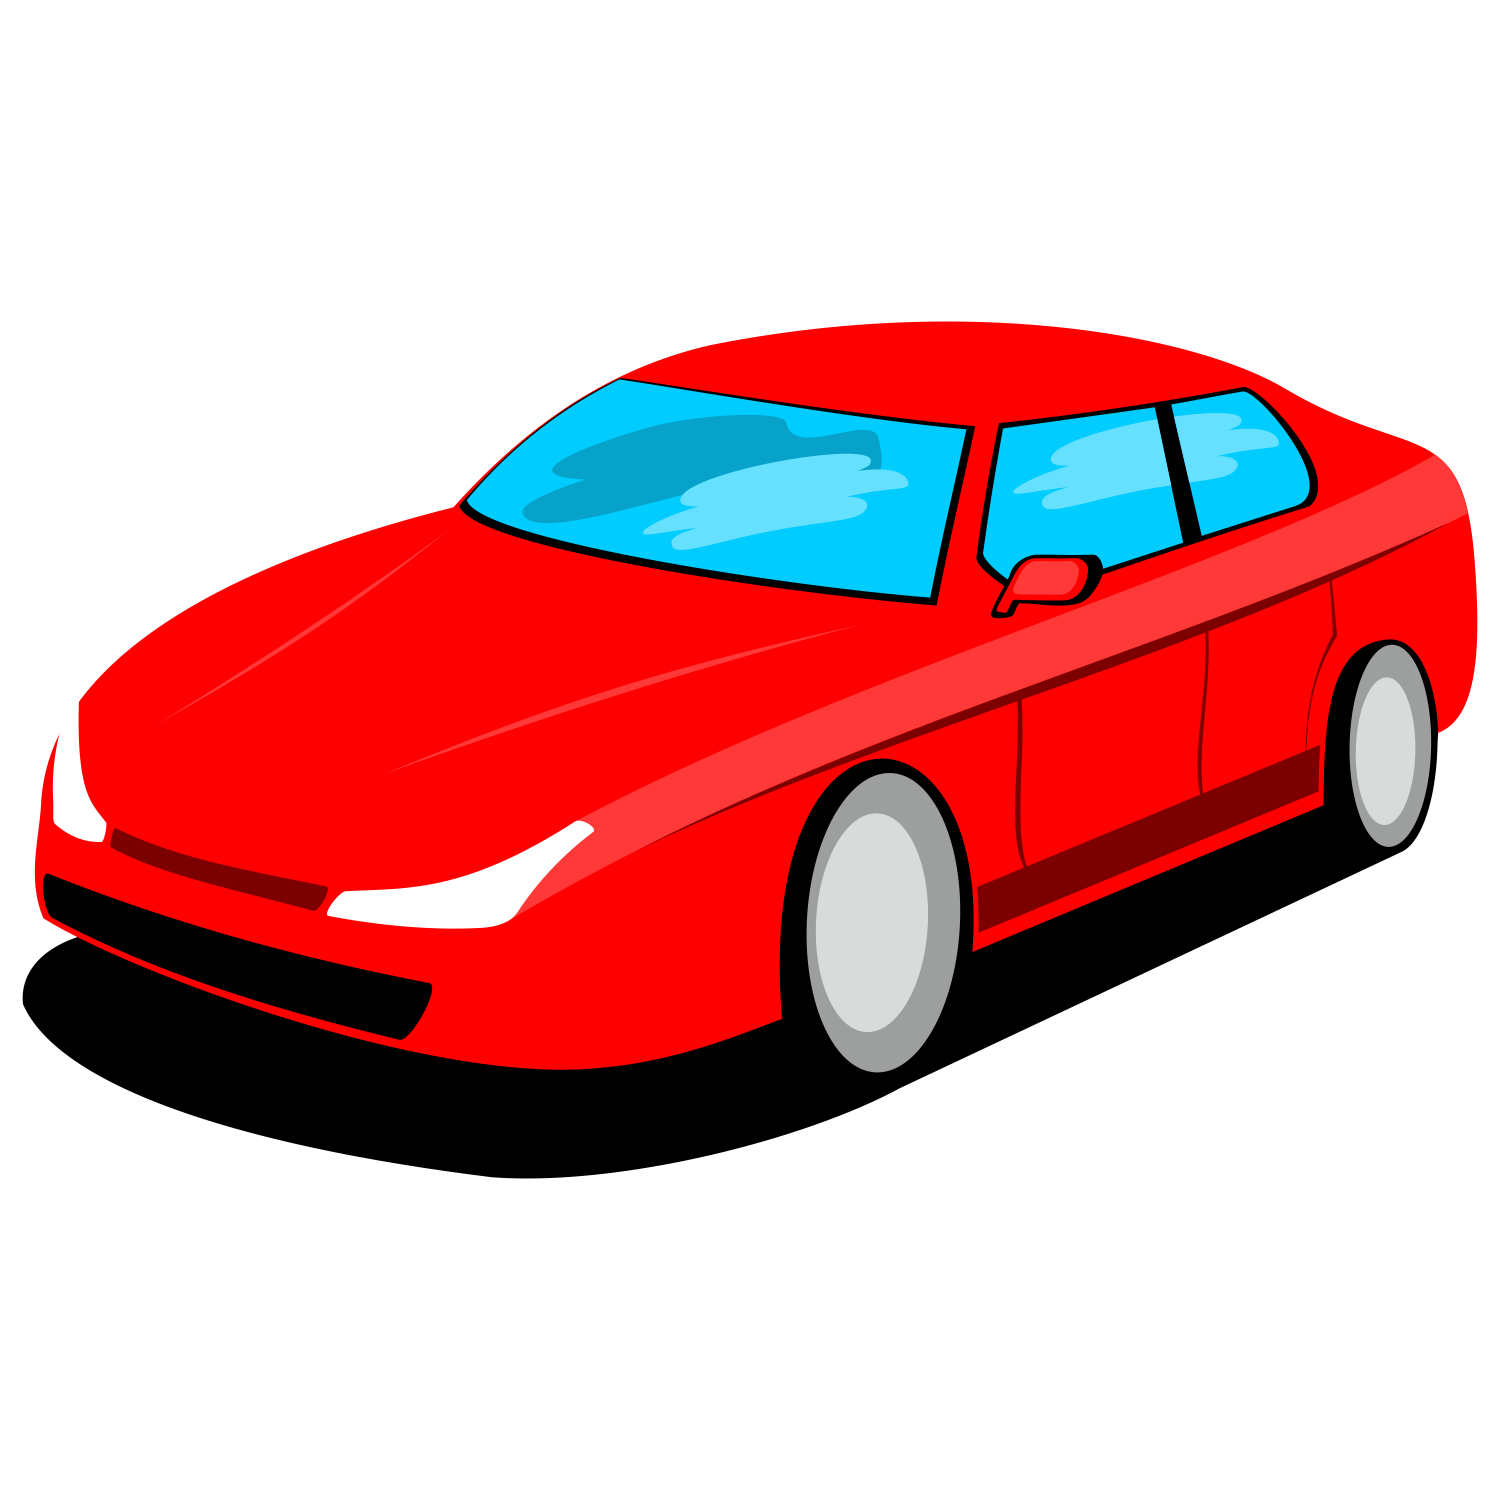 Vector for free use: Red car vector.